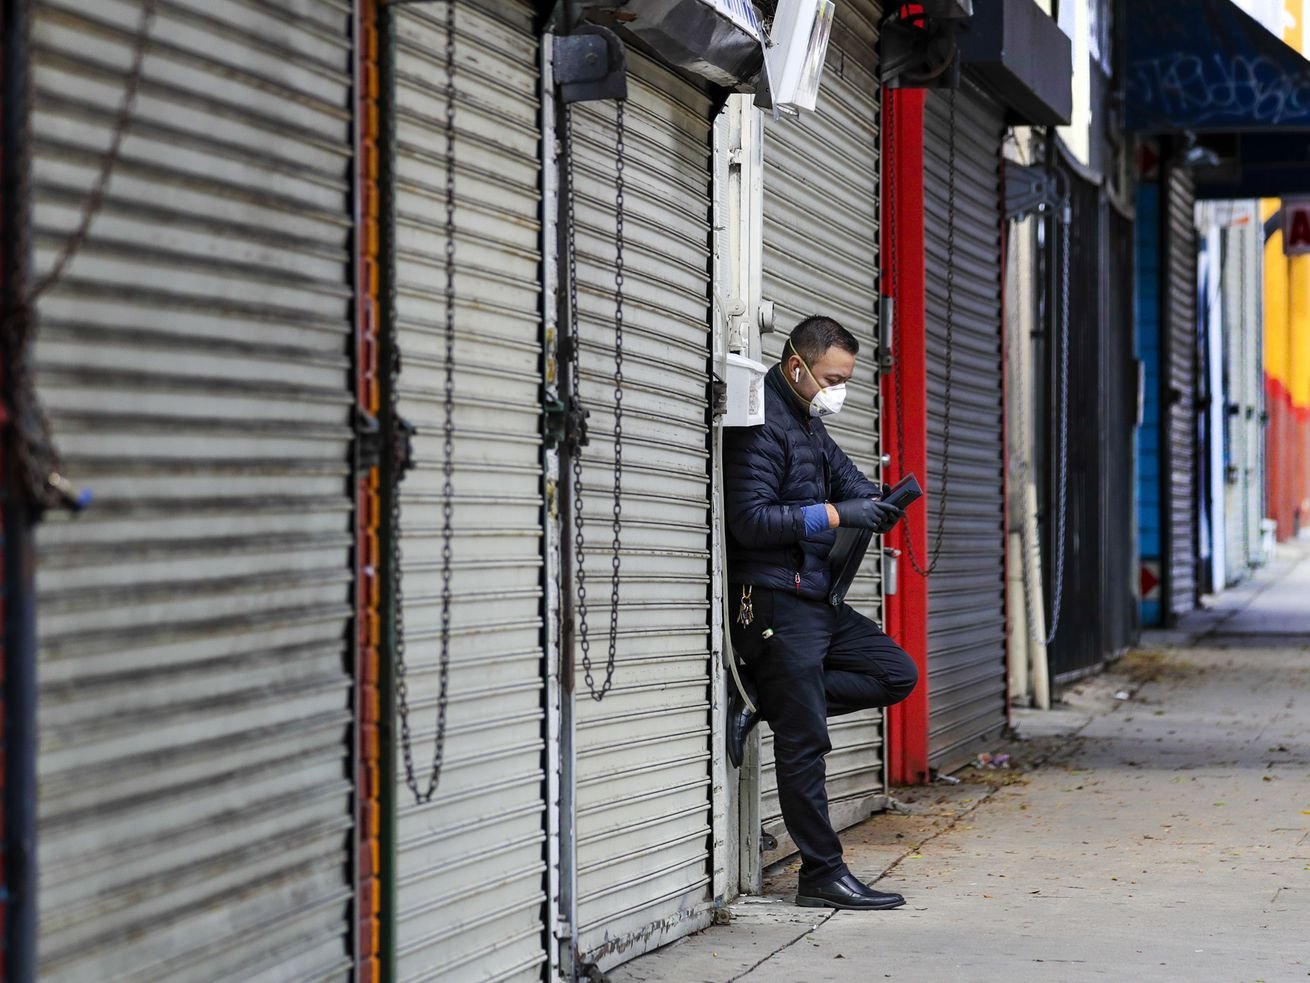 A masked man in a light black coat leans against a wall on a block full of closed metal shop gates.